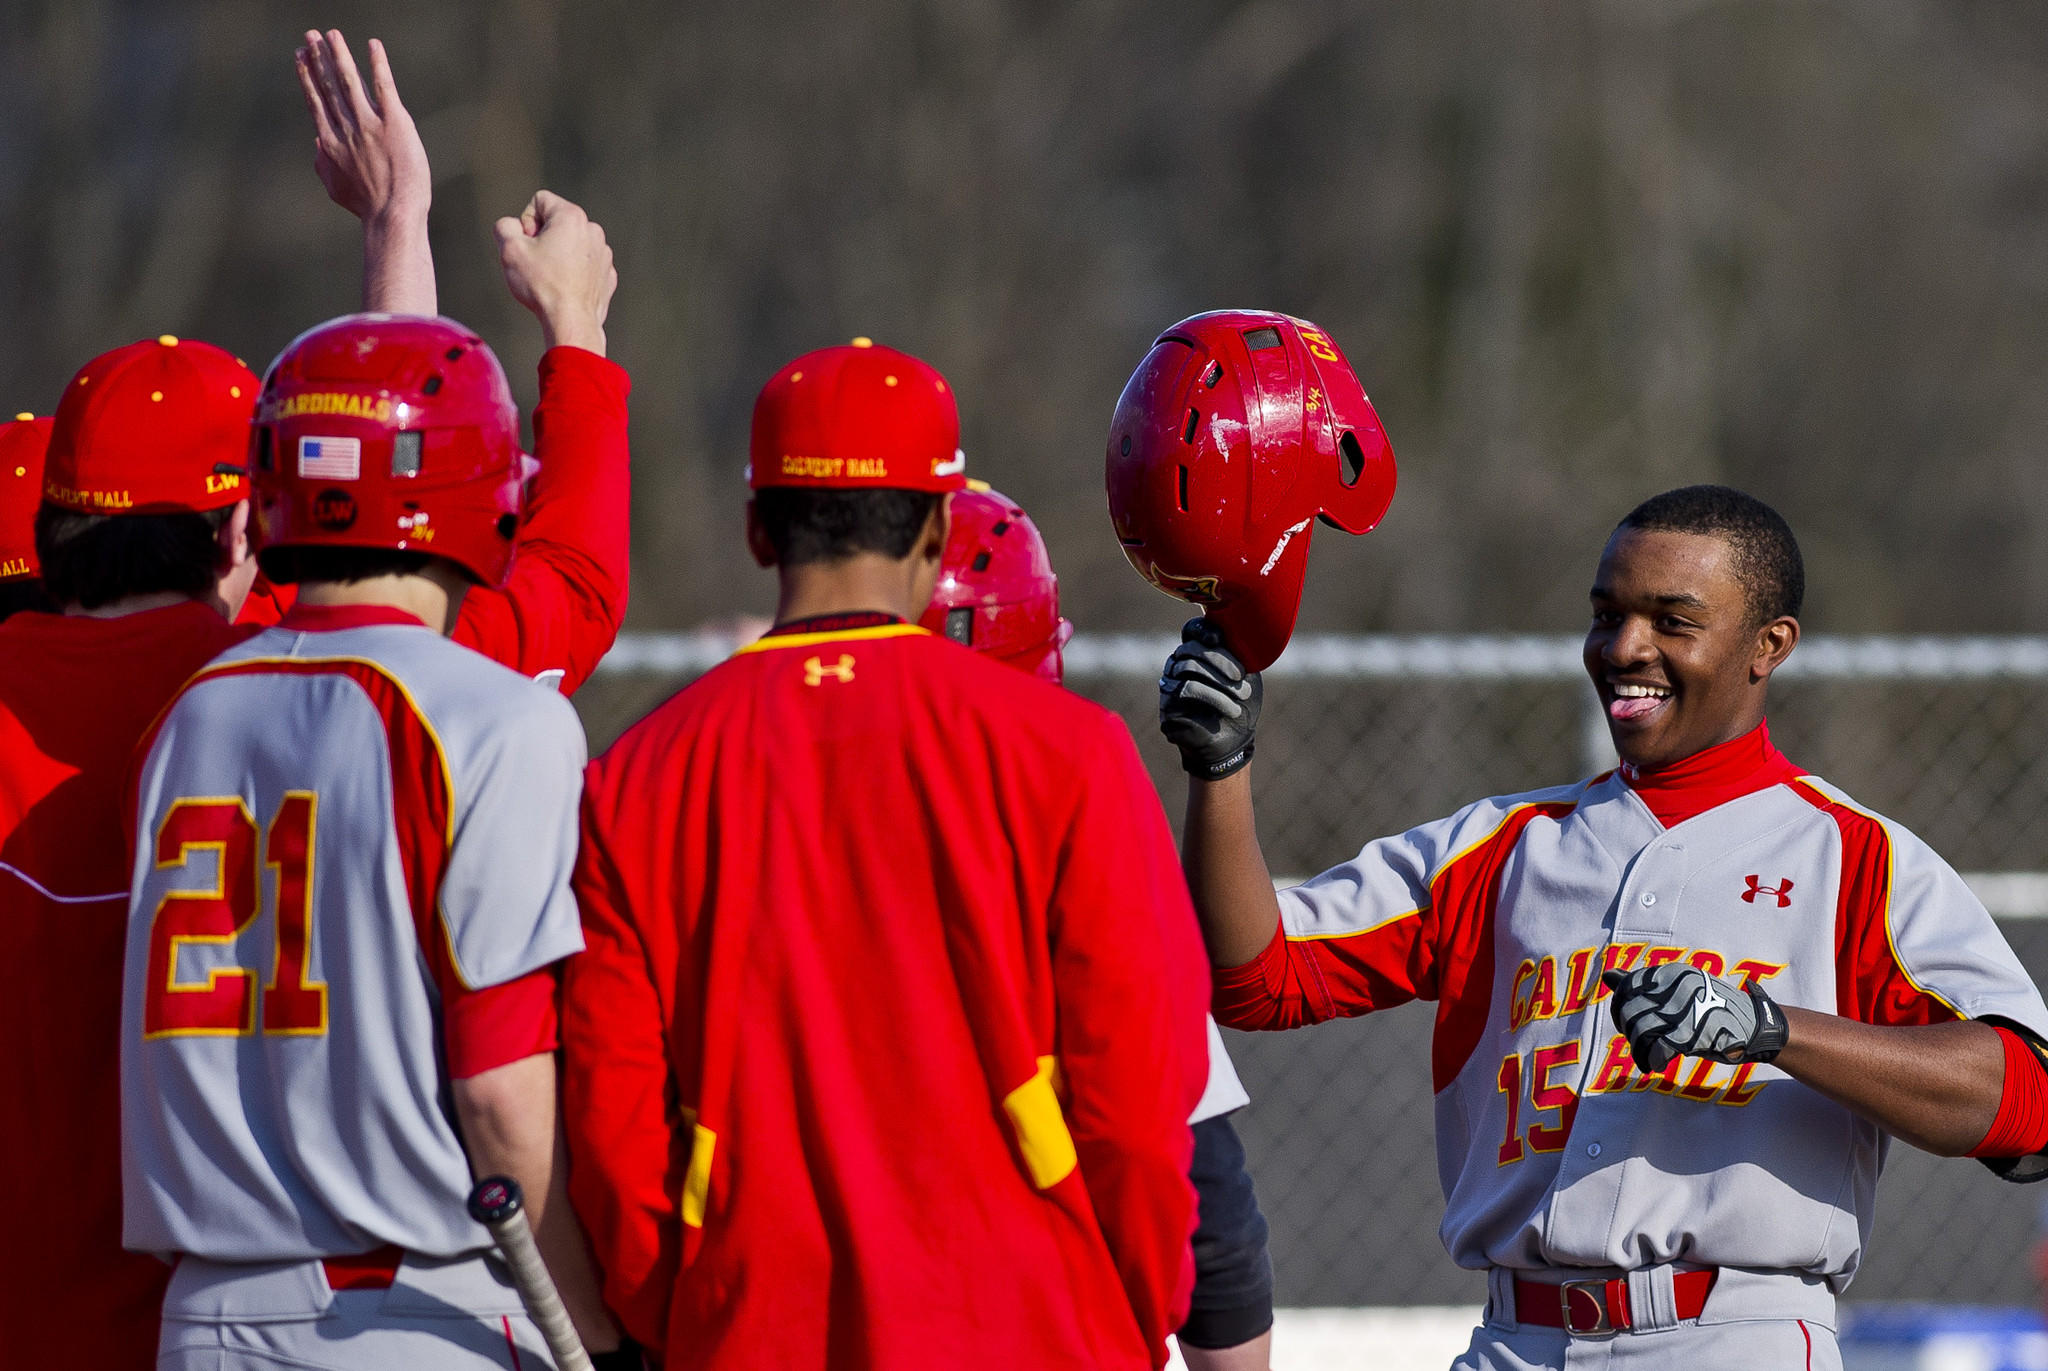 Calvery Hall's Troy Stokes, right, is congratulated by teammates after hitting a grand slam against Gilman.